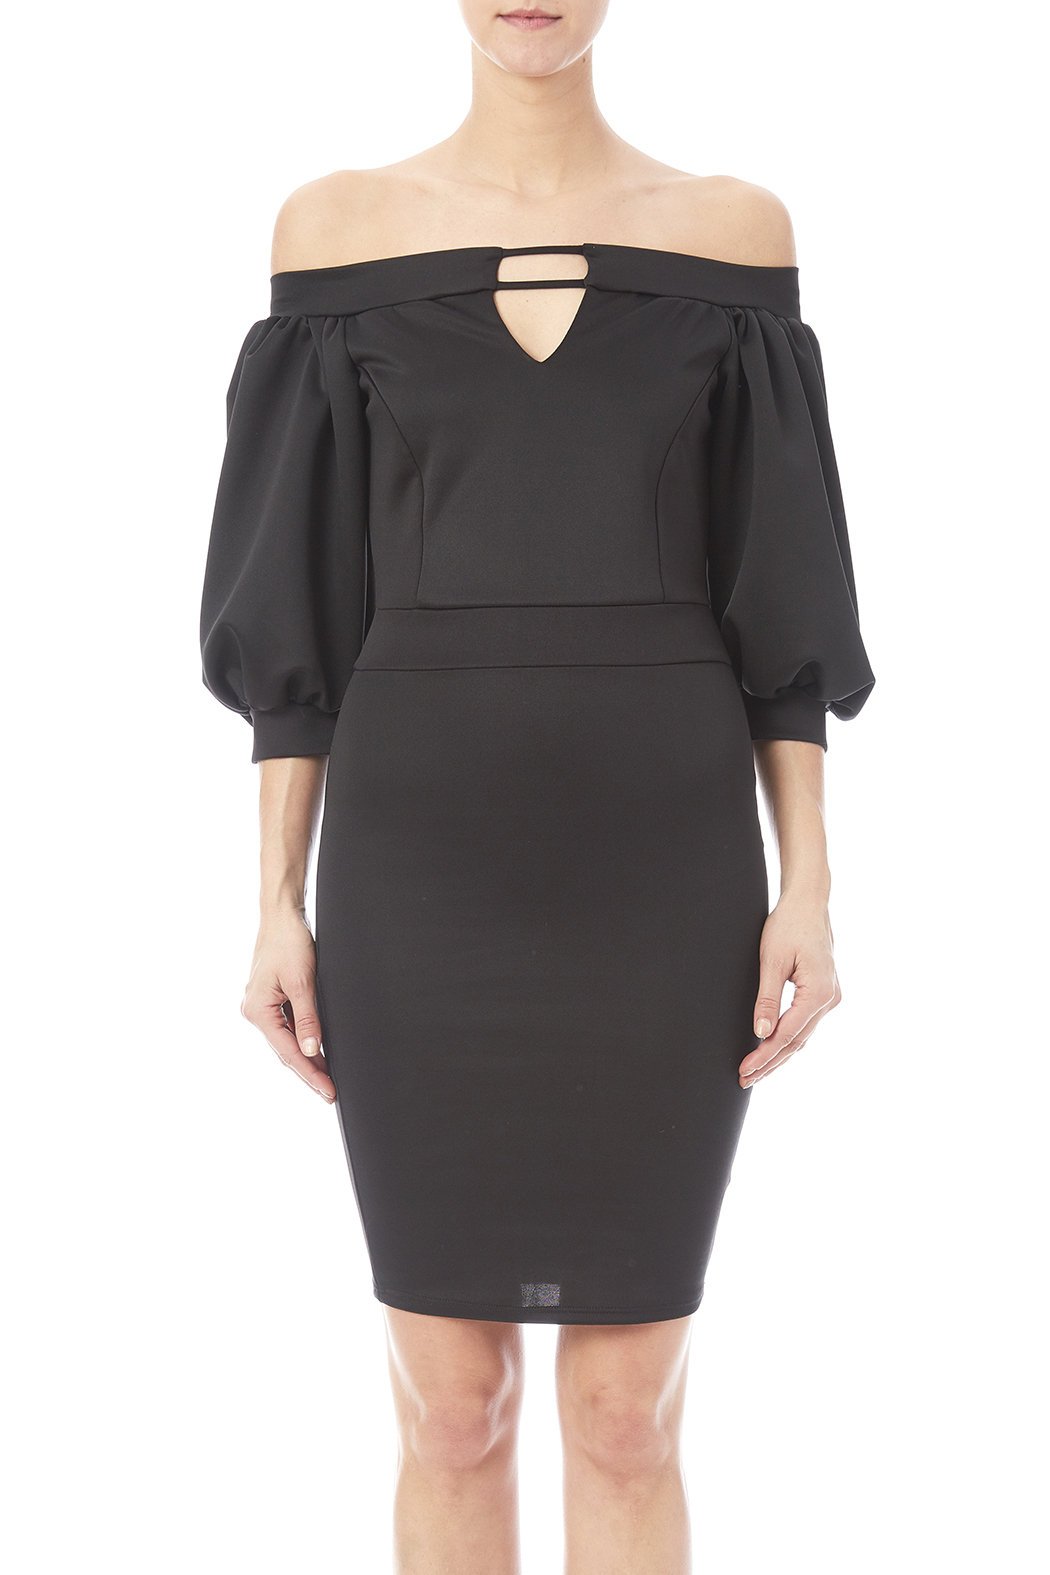 g1k puff sleeve dress from prospect heights by ak couture